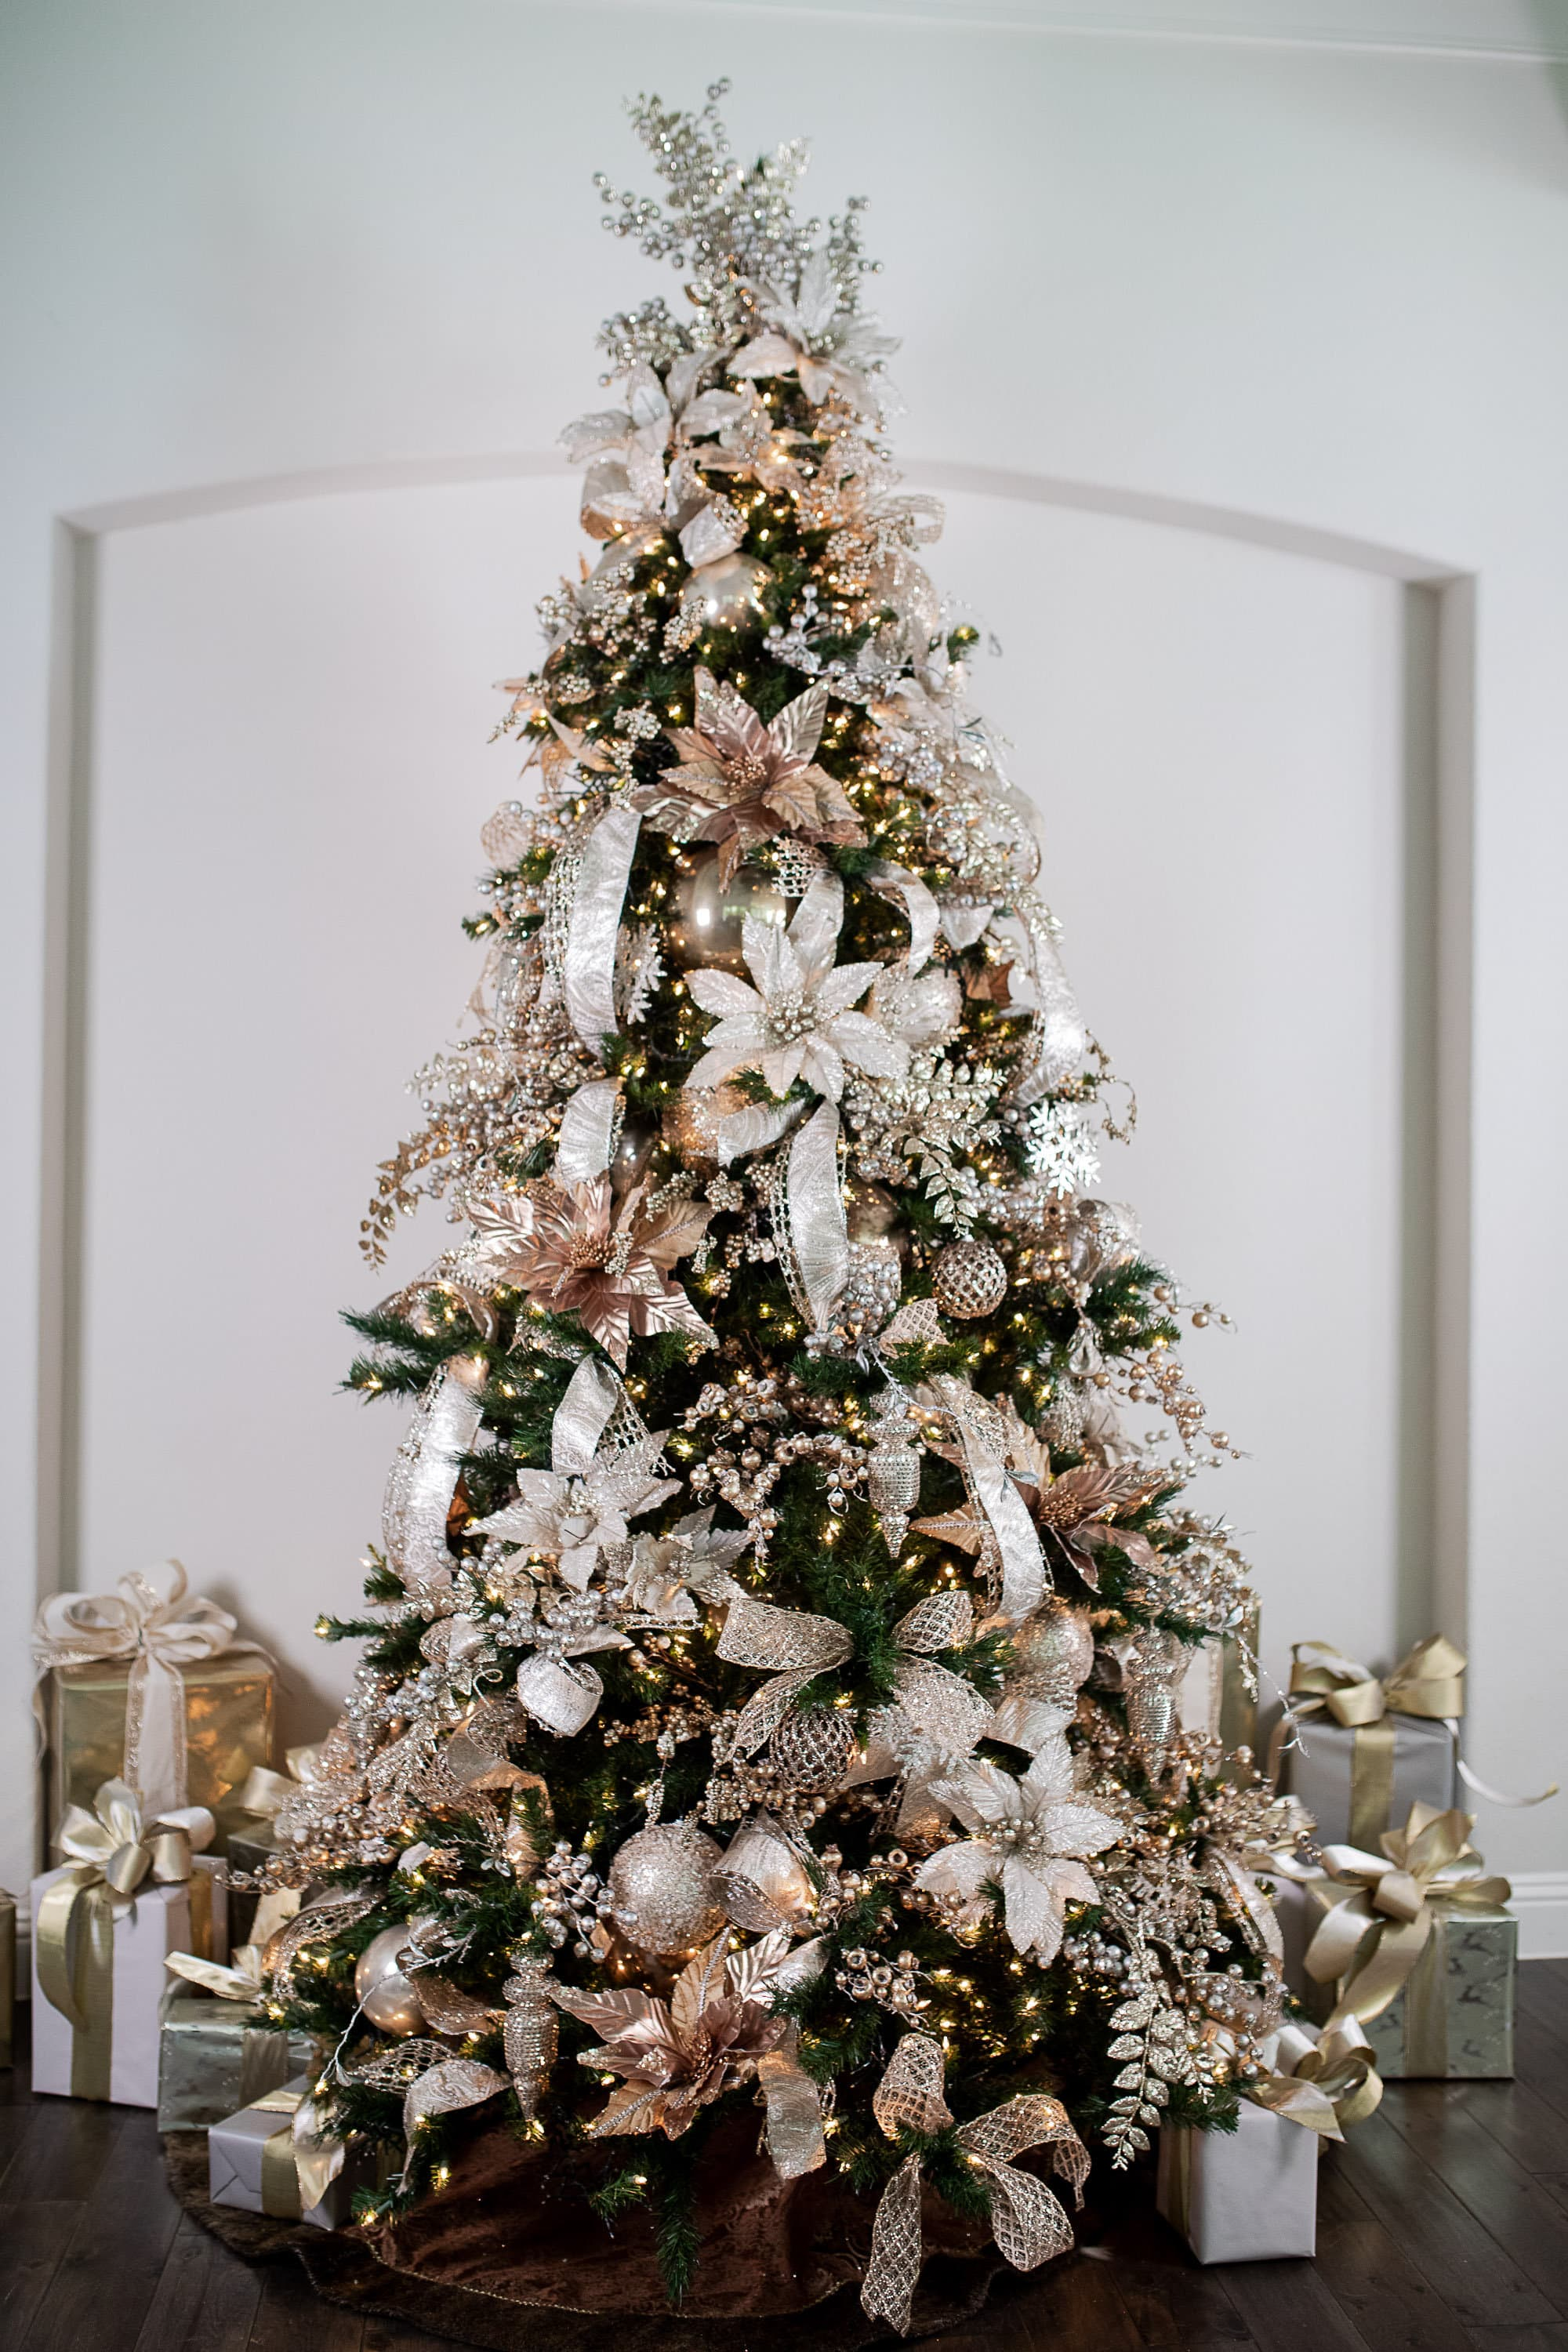 How To Theme Your Christmas Tree Decorator S Warehouse